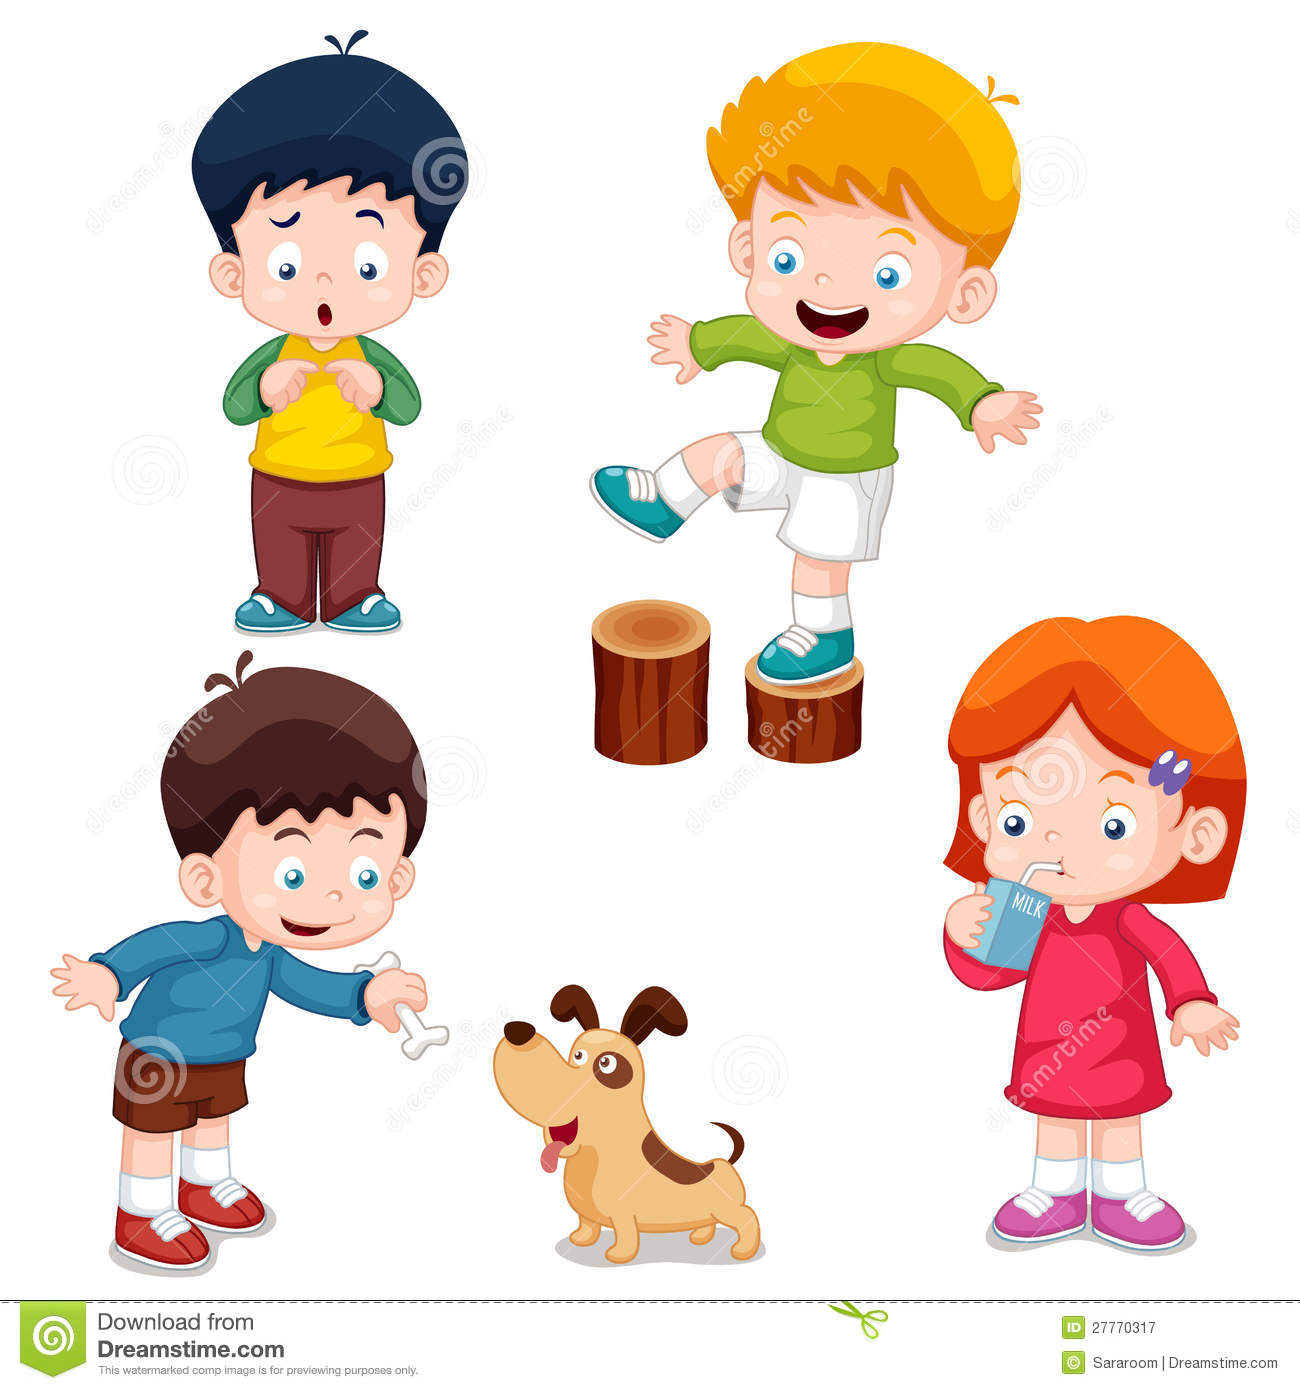 Uncategorized Free Download Cartoons Kids characters kids cartoon royalty free stock photography image photo download cartoon